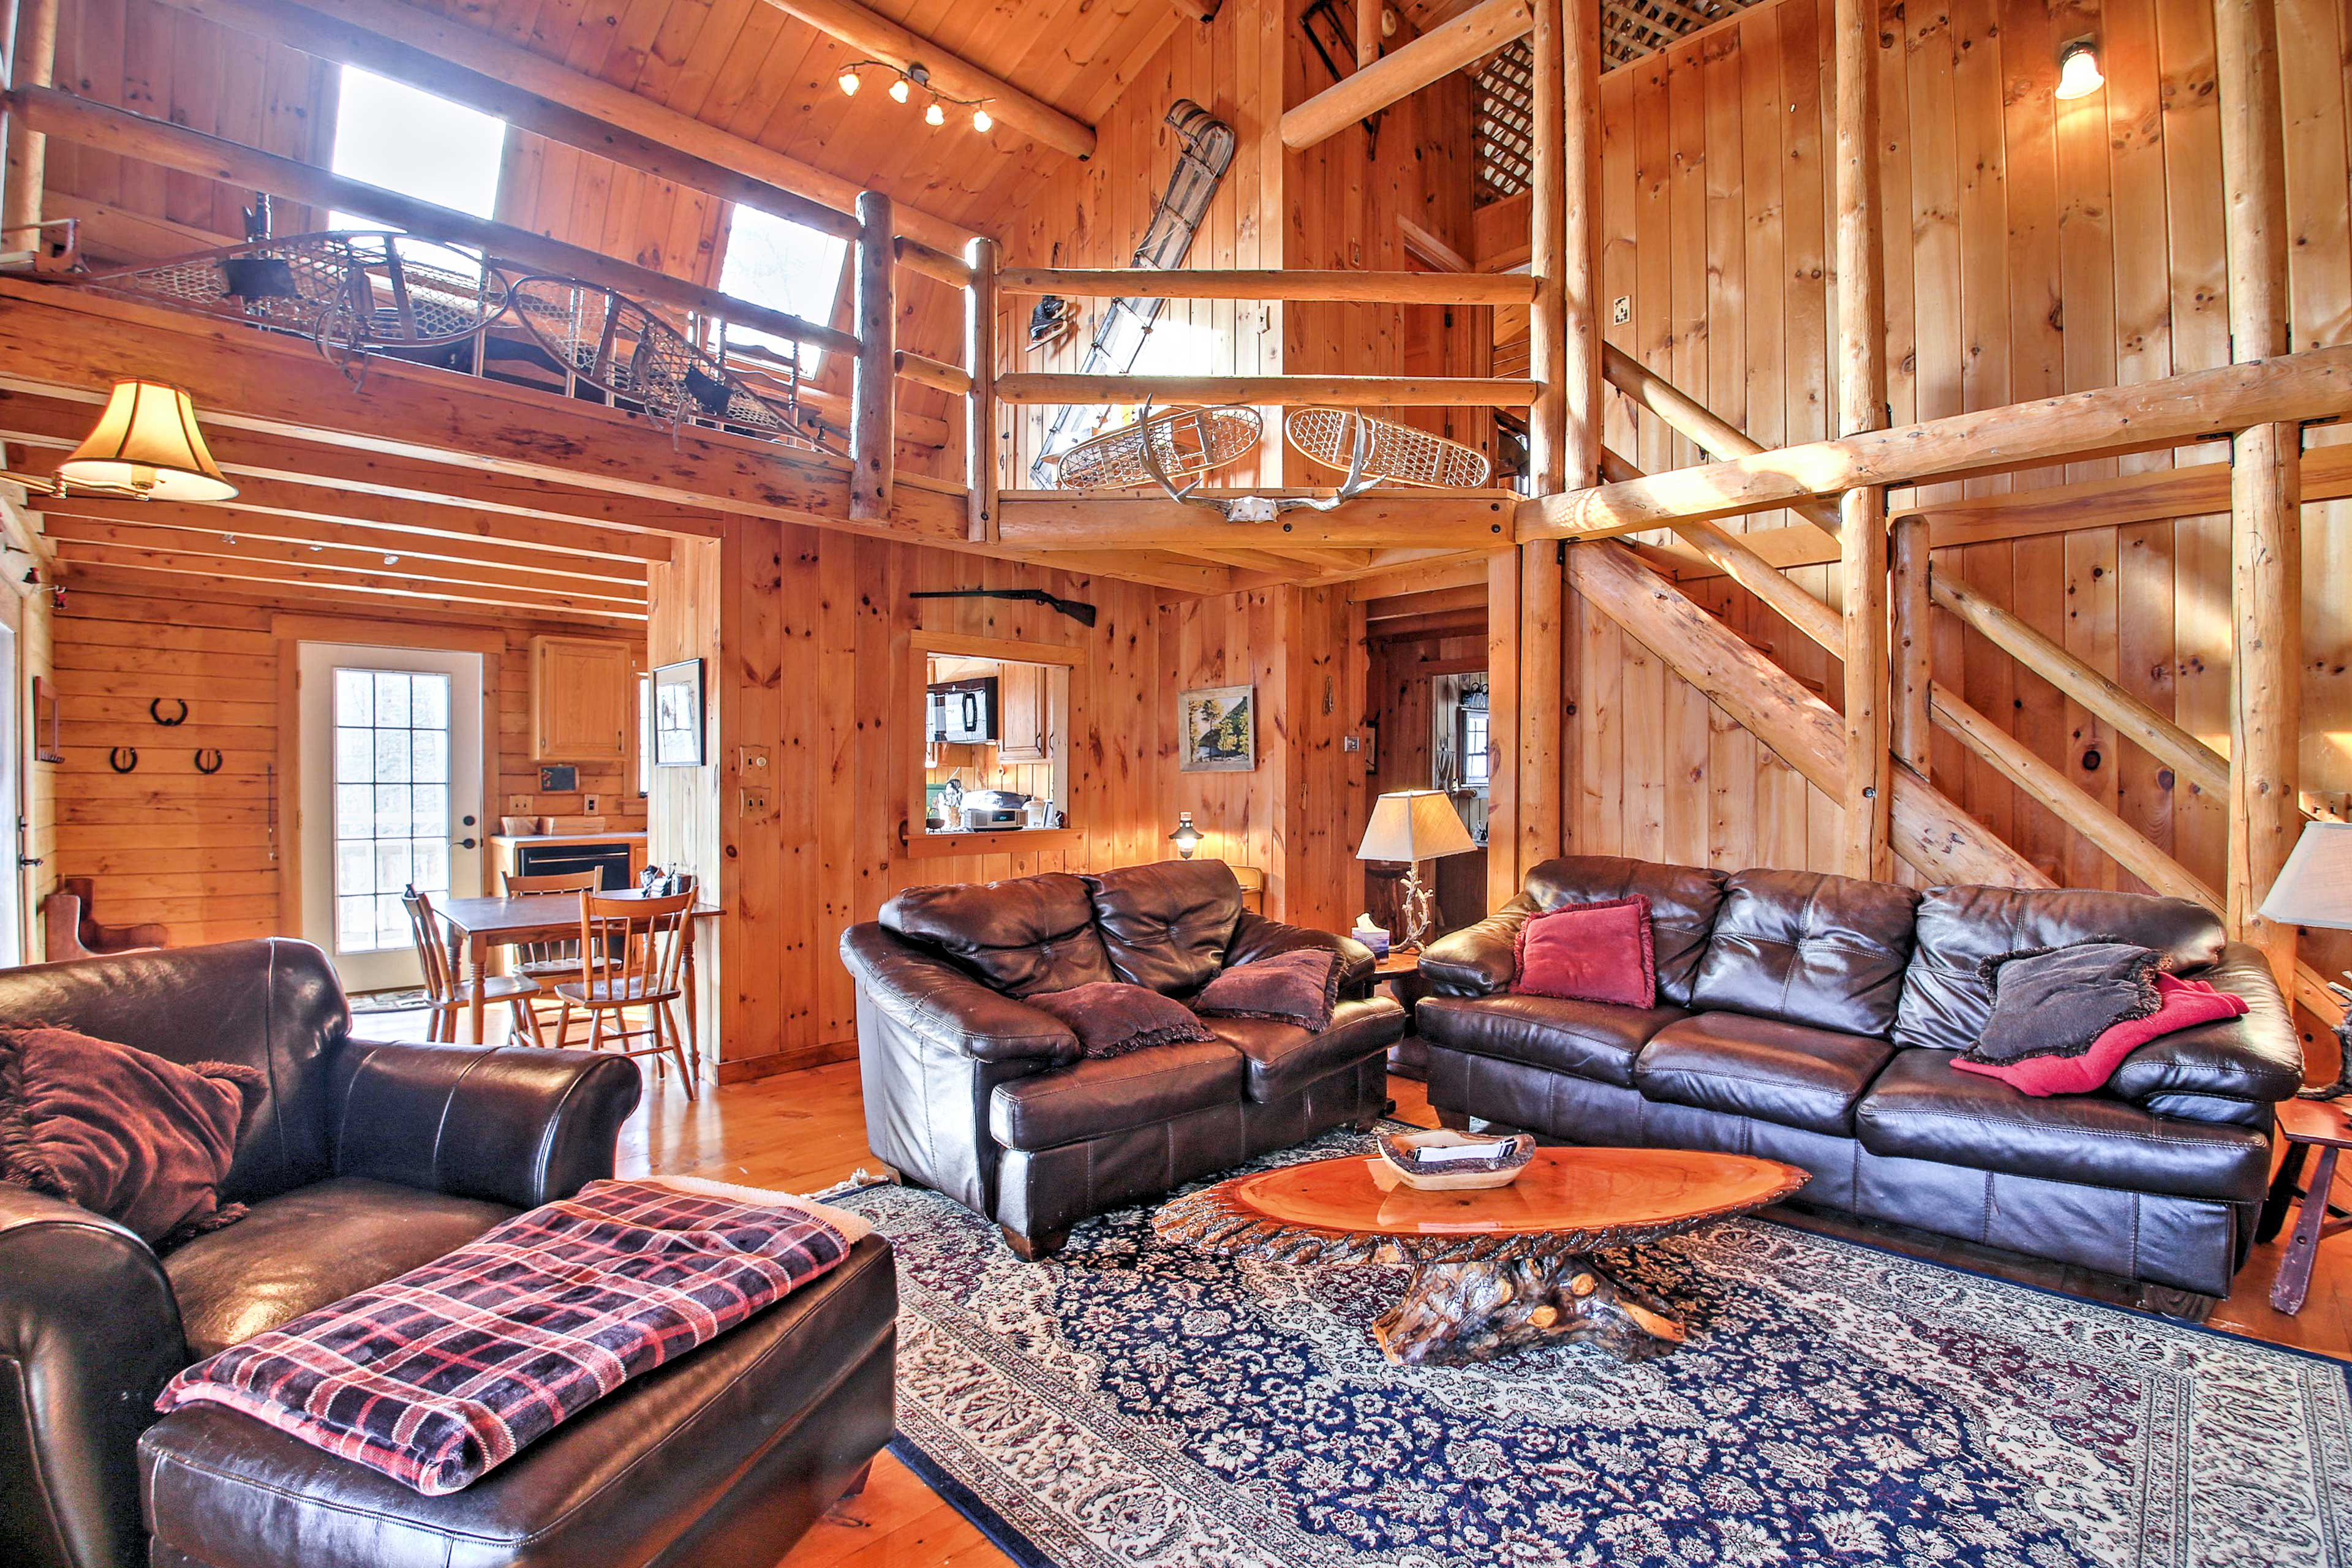 The rustic great room will quickly become your favorite place to unwind.